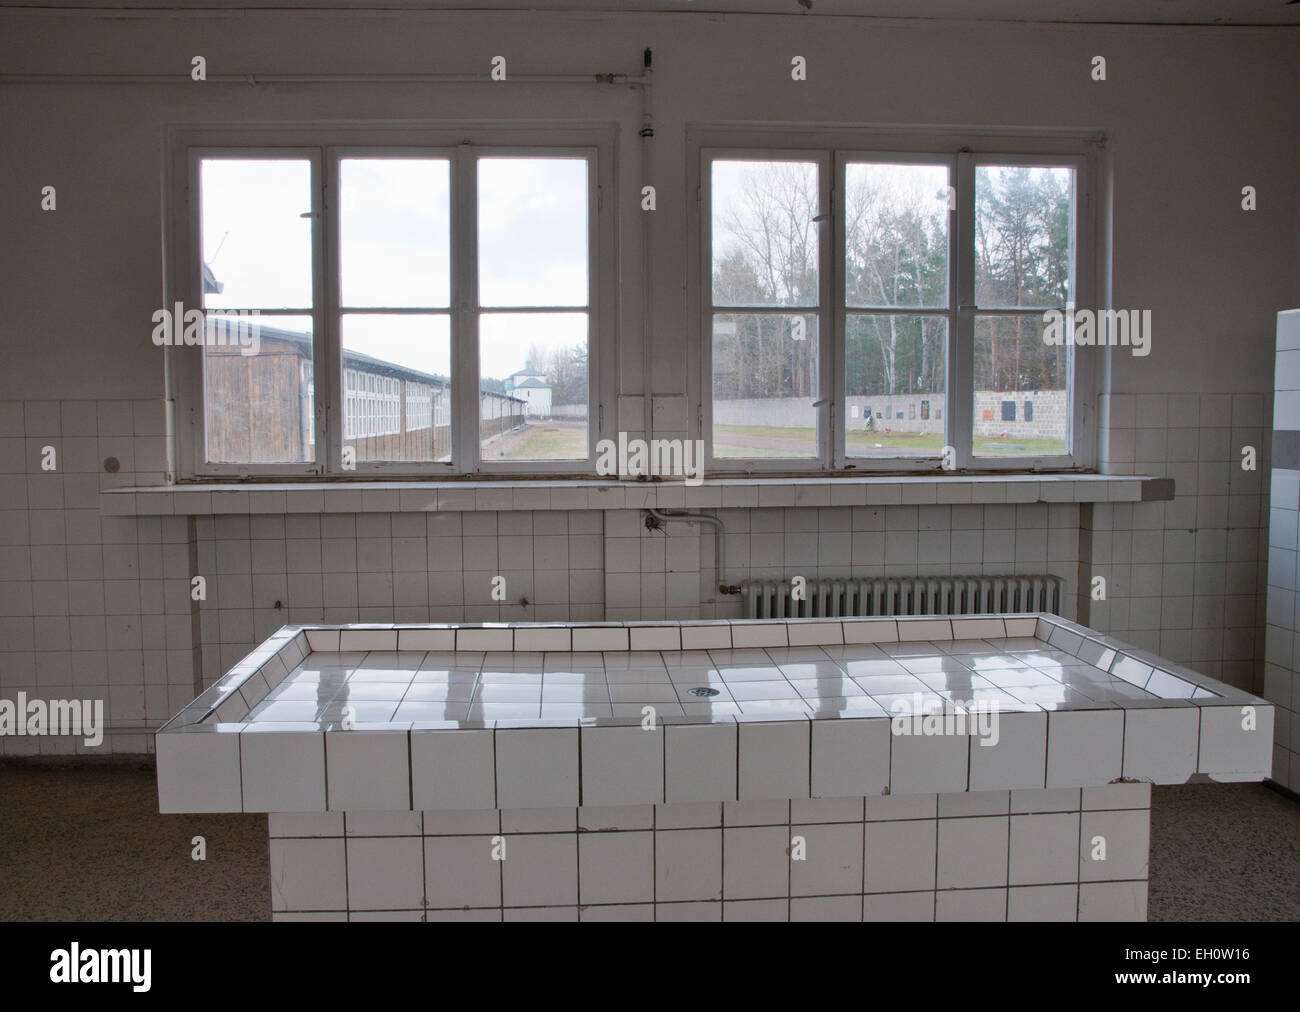 Pathology building in Sachsenhausen concentration camp, Oranienburg, Germany - Stock Image